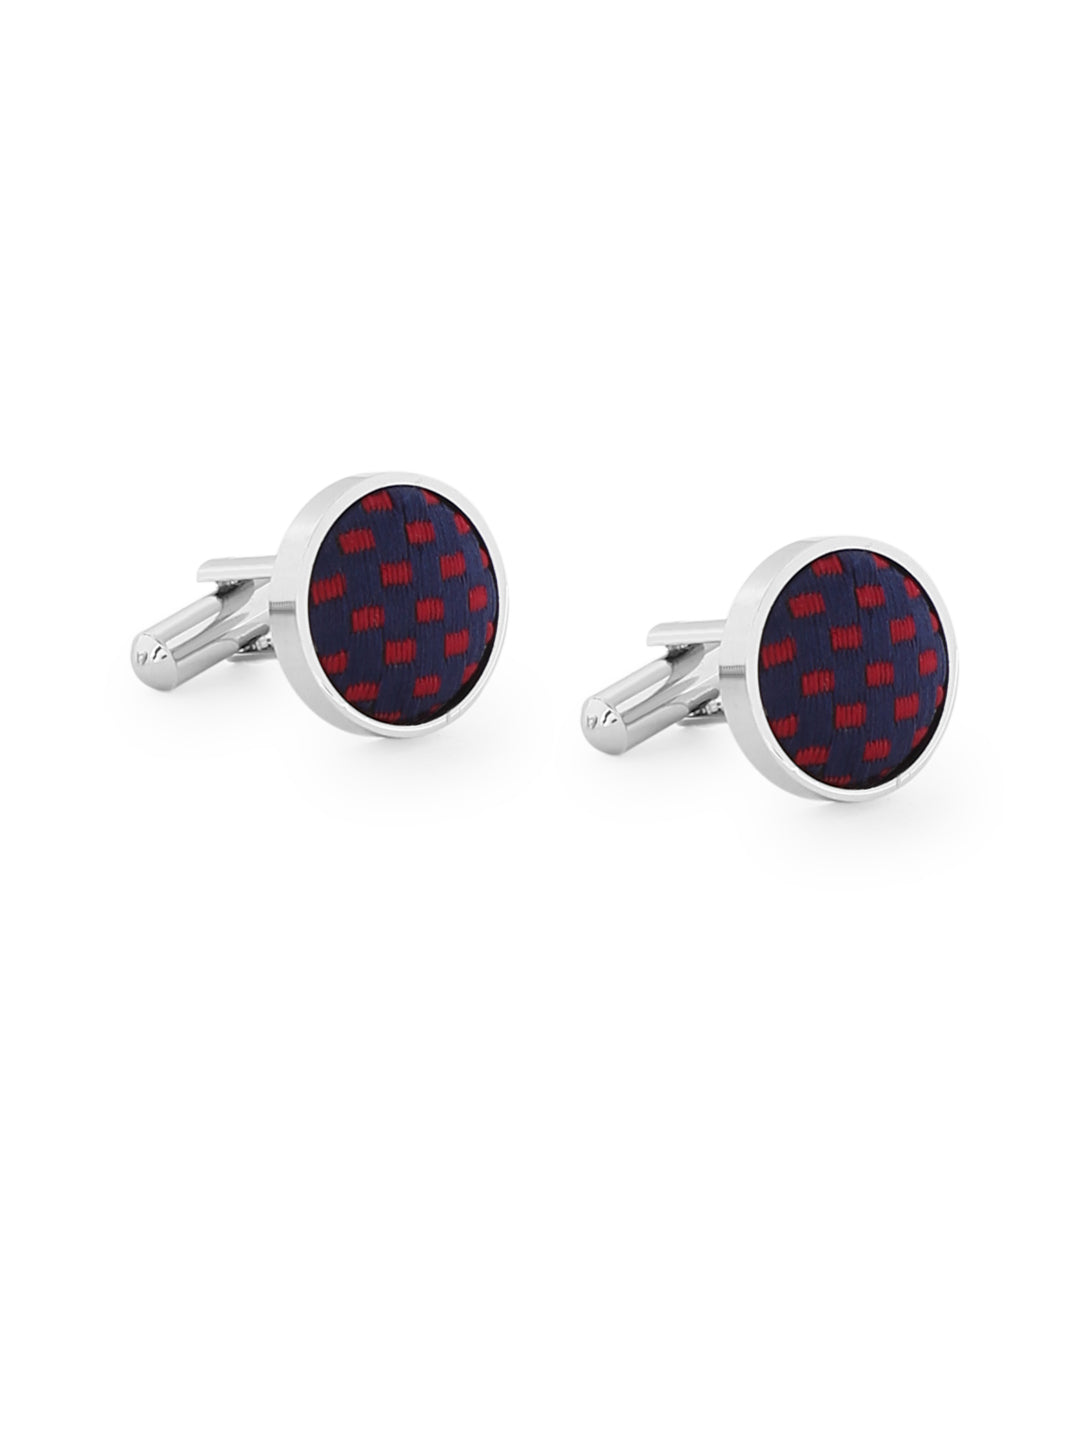 ZIDO Tie Cufflink Combos for Men TNC167